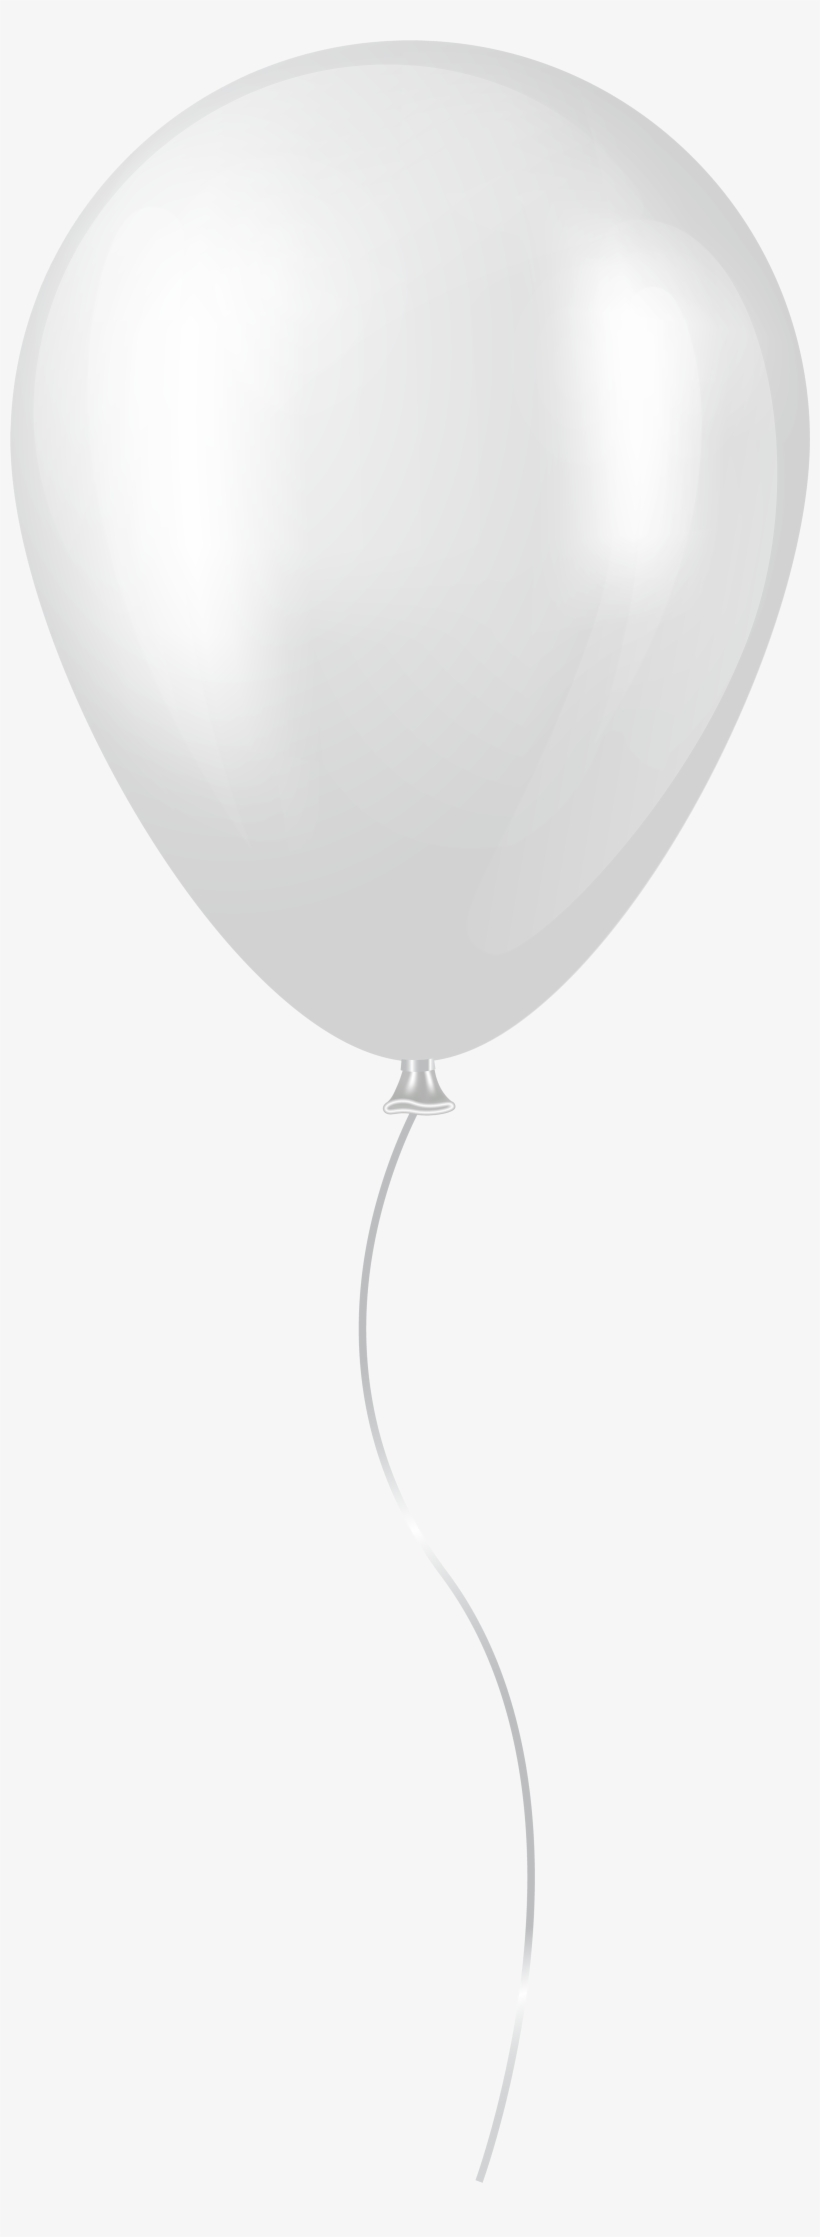 Free White Balloon Png, Download Free Clip Art, Free Clip.